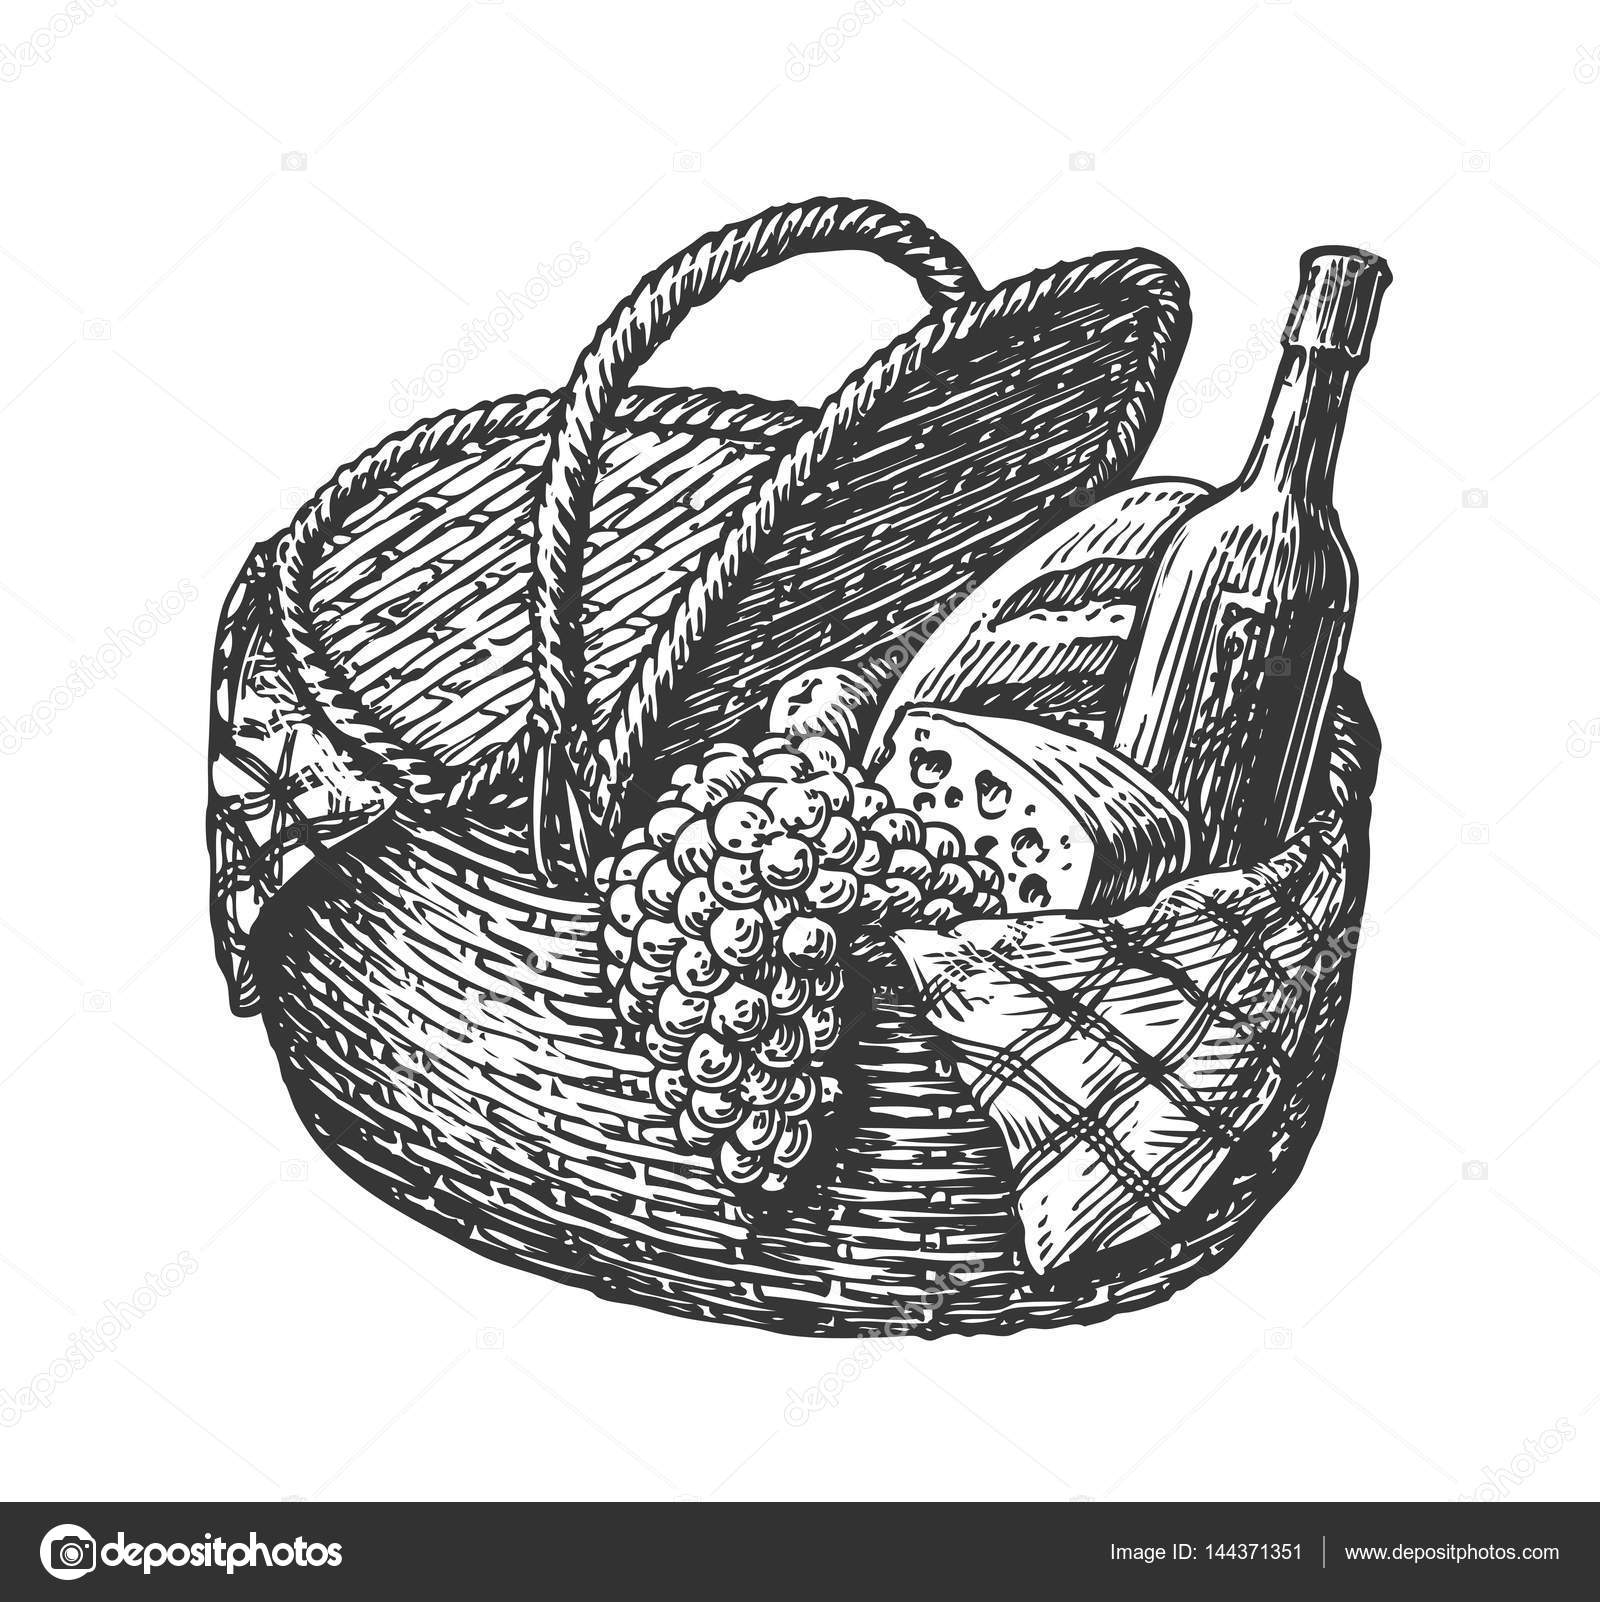 Vintage Wicker Picnic Hamper Or Basket With Food Such As Bottle Of Wine Cheese Bunch Grapes Loaf Sketch Vector Illustration Stock Vector C Sergeypykhonin 144371351